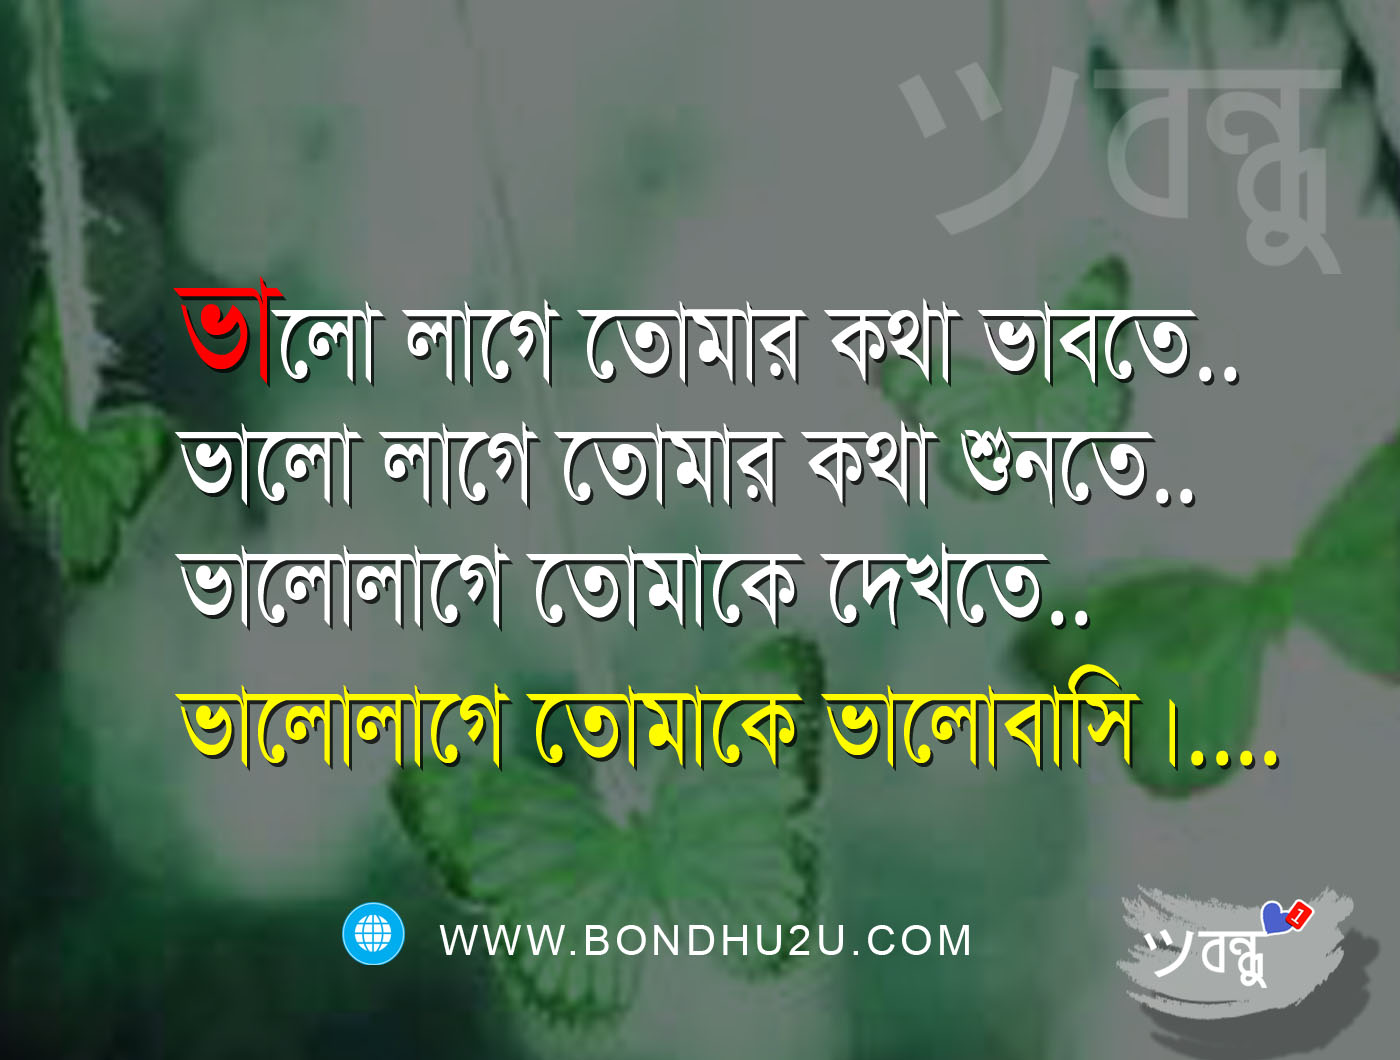 Love Sms Wallpaper Bangla : bangla valobashar comment, bangla love image, bangla romantic kobita line,bangla romantic kobita ...